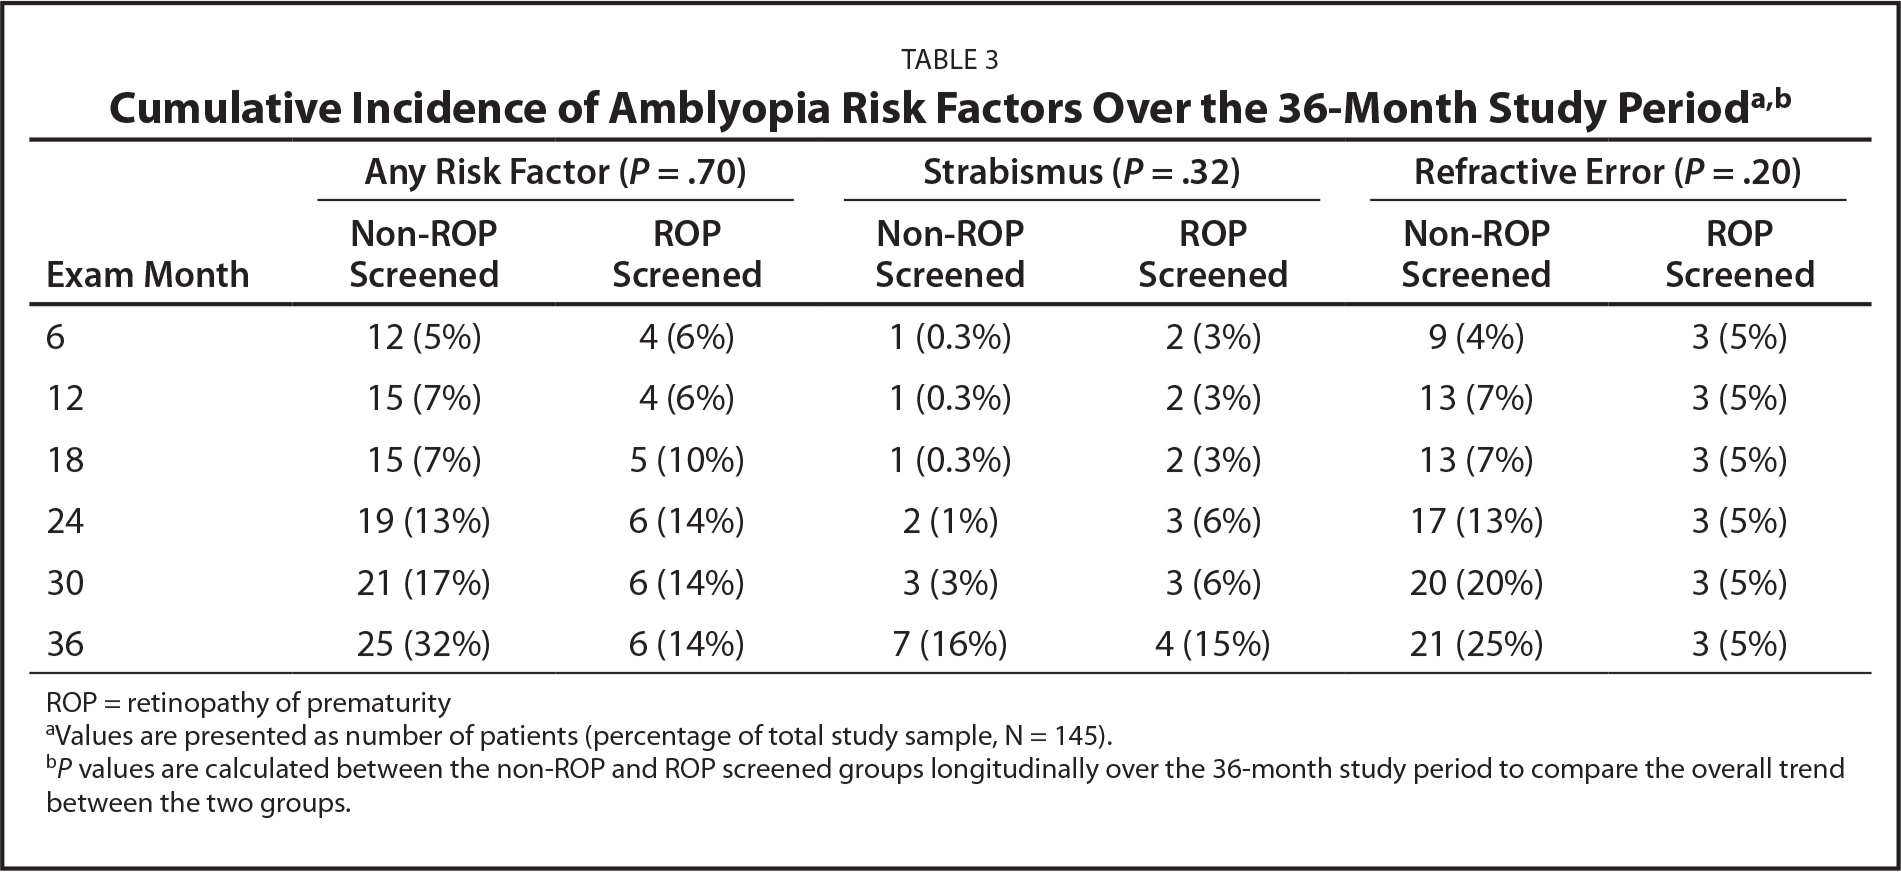 Cumulative Incidence of Amblyopia Risk Factors Over the 36-Month Study Perioda,b